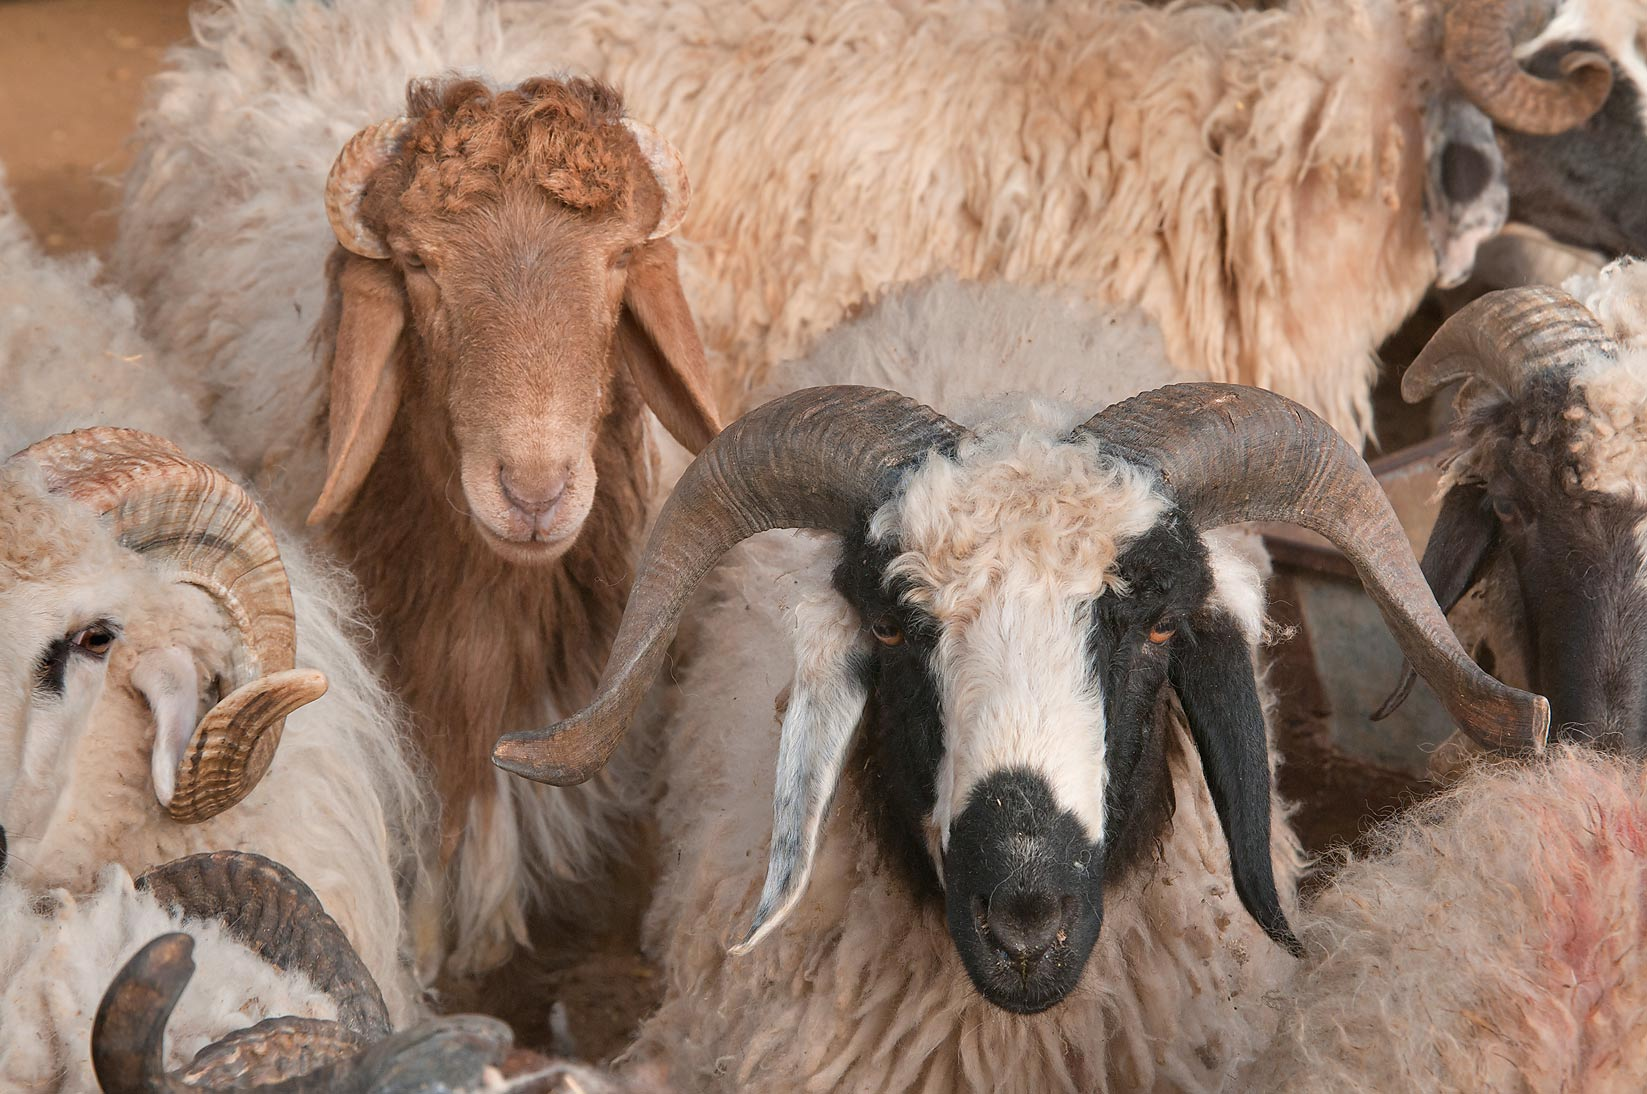 Rams and goats in a pen in Wholesale Animal Market. Doha, Qatar